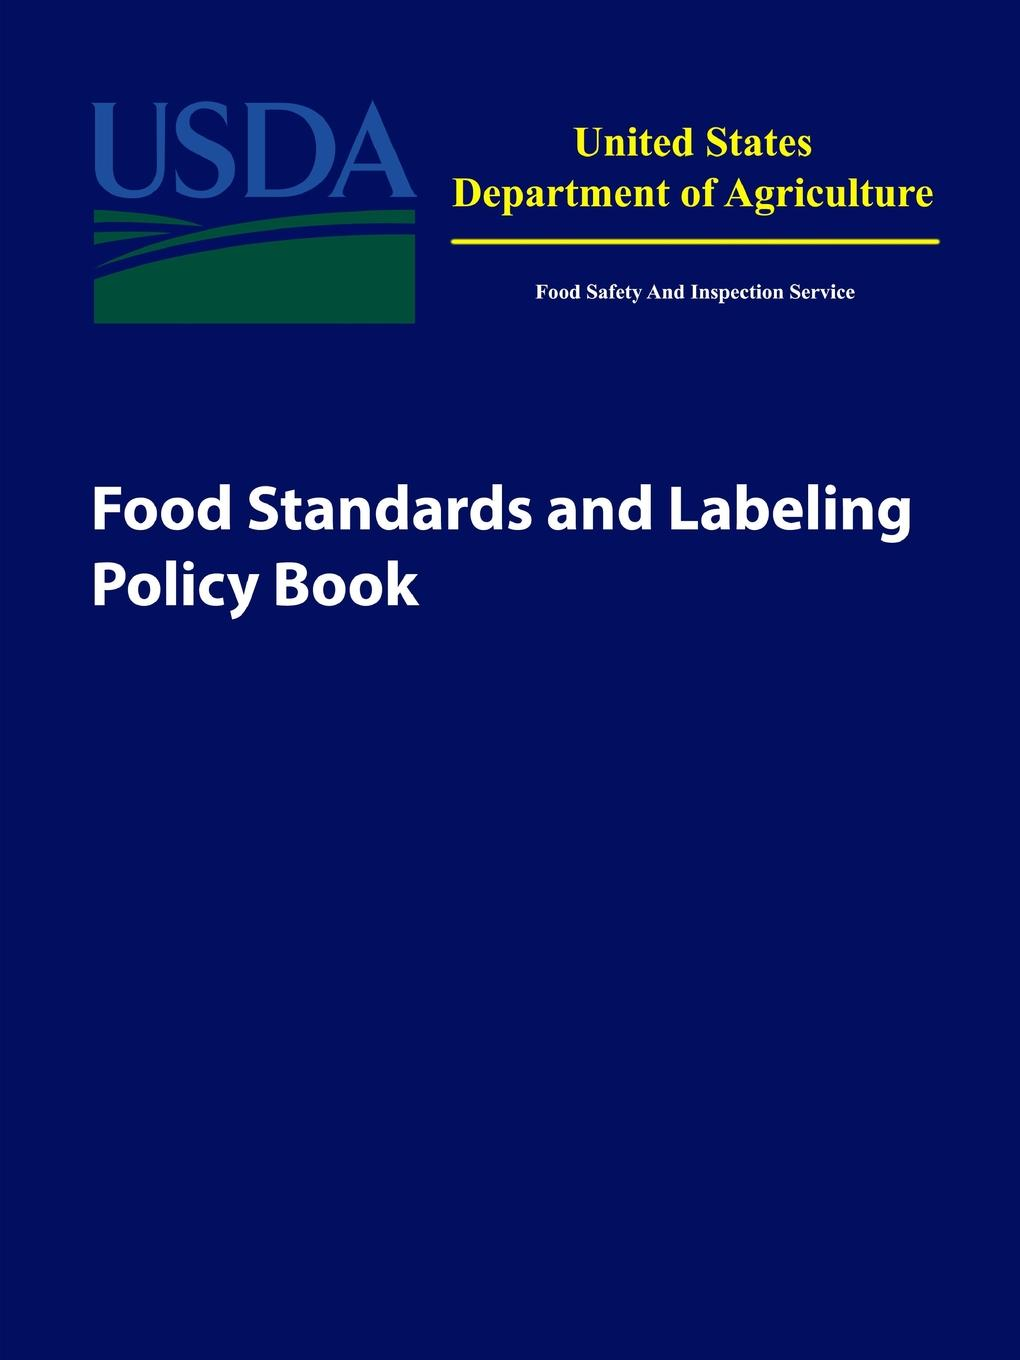 U.S. Department of Agriculture Food Standards and Labeling Policy Book meat and poultry buyers guide on cd–rom